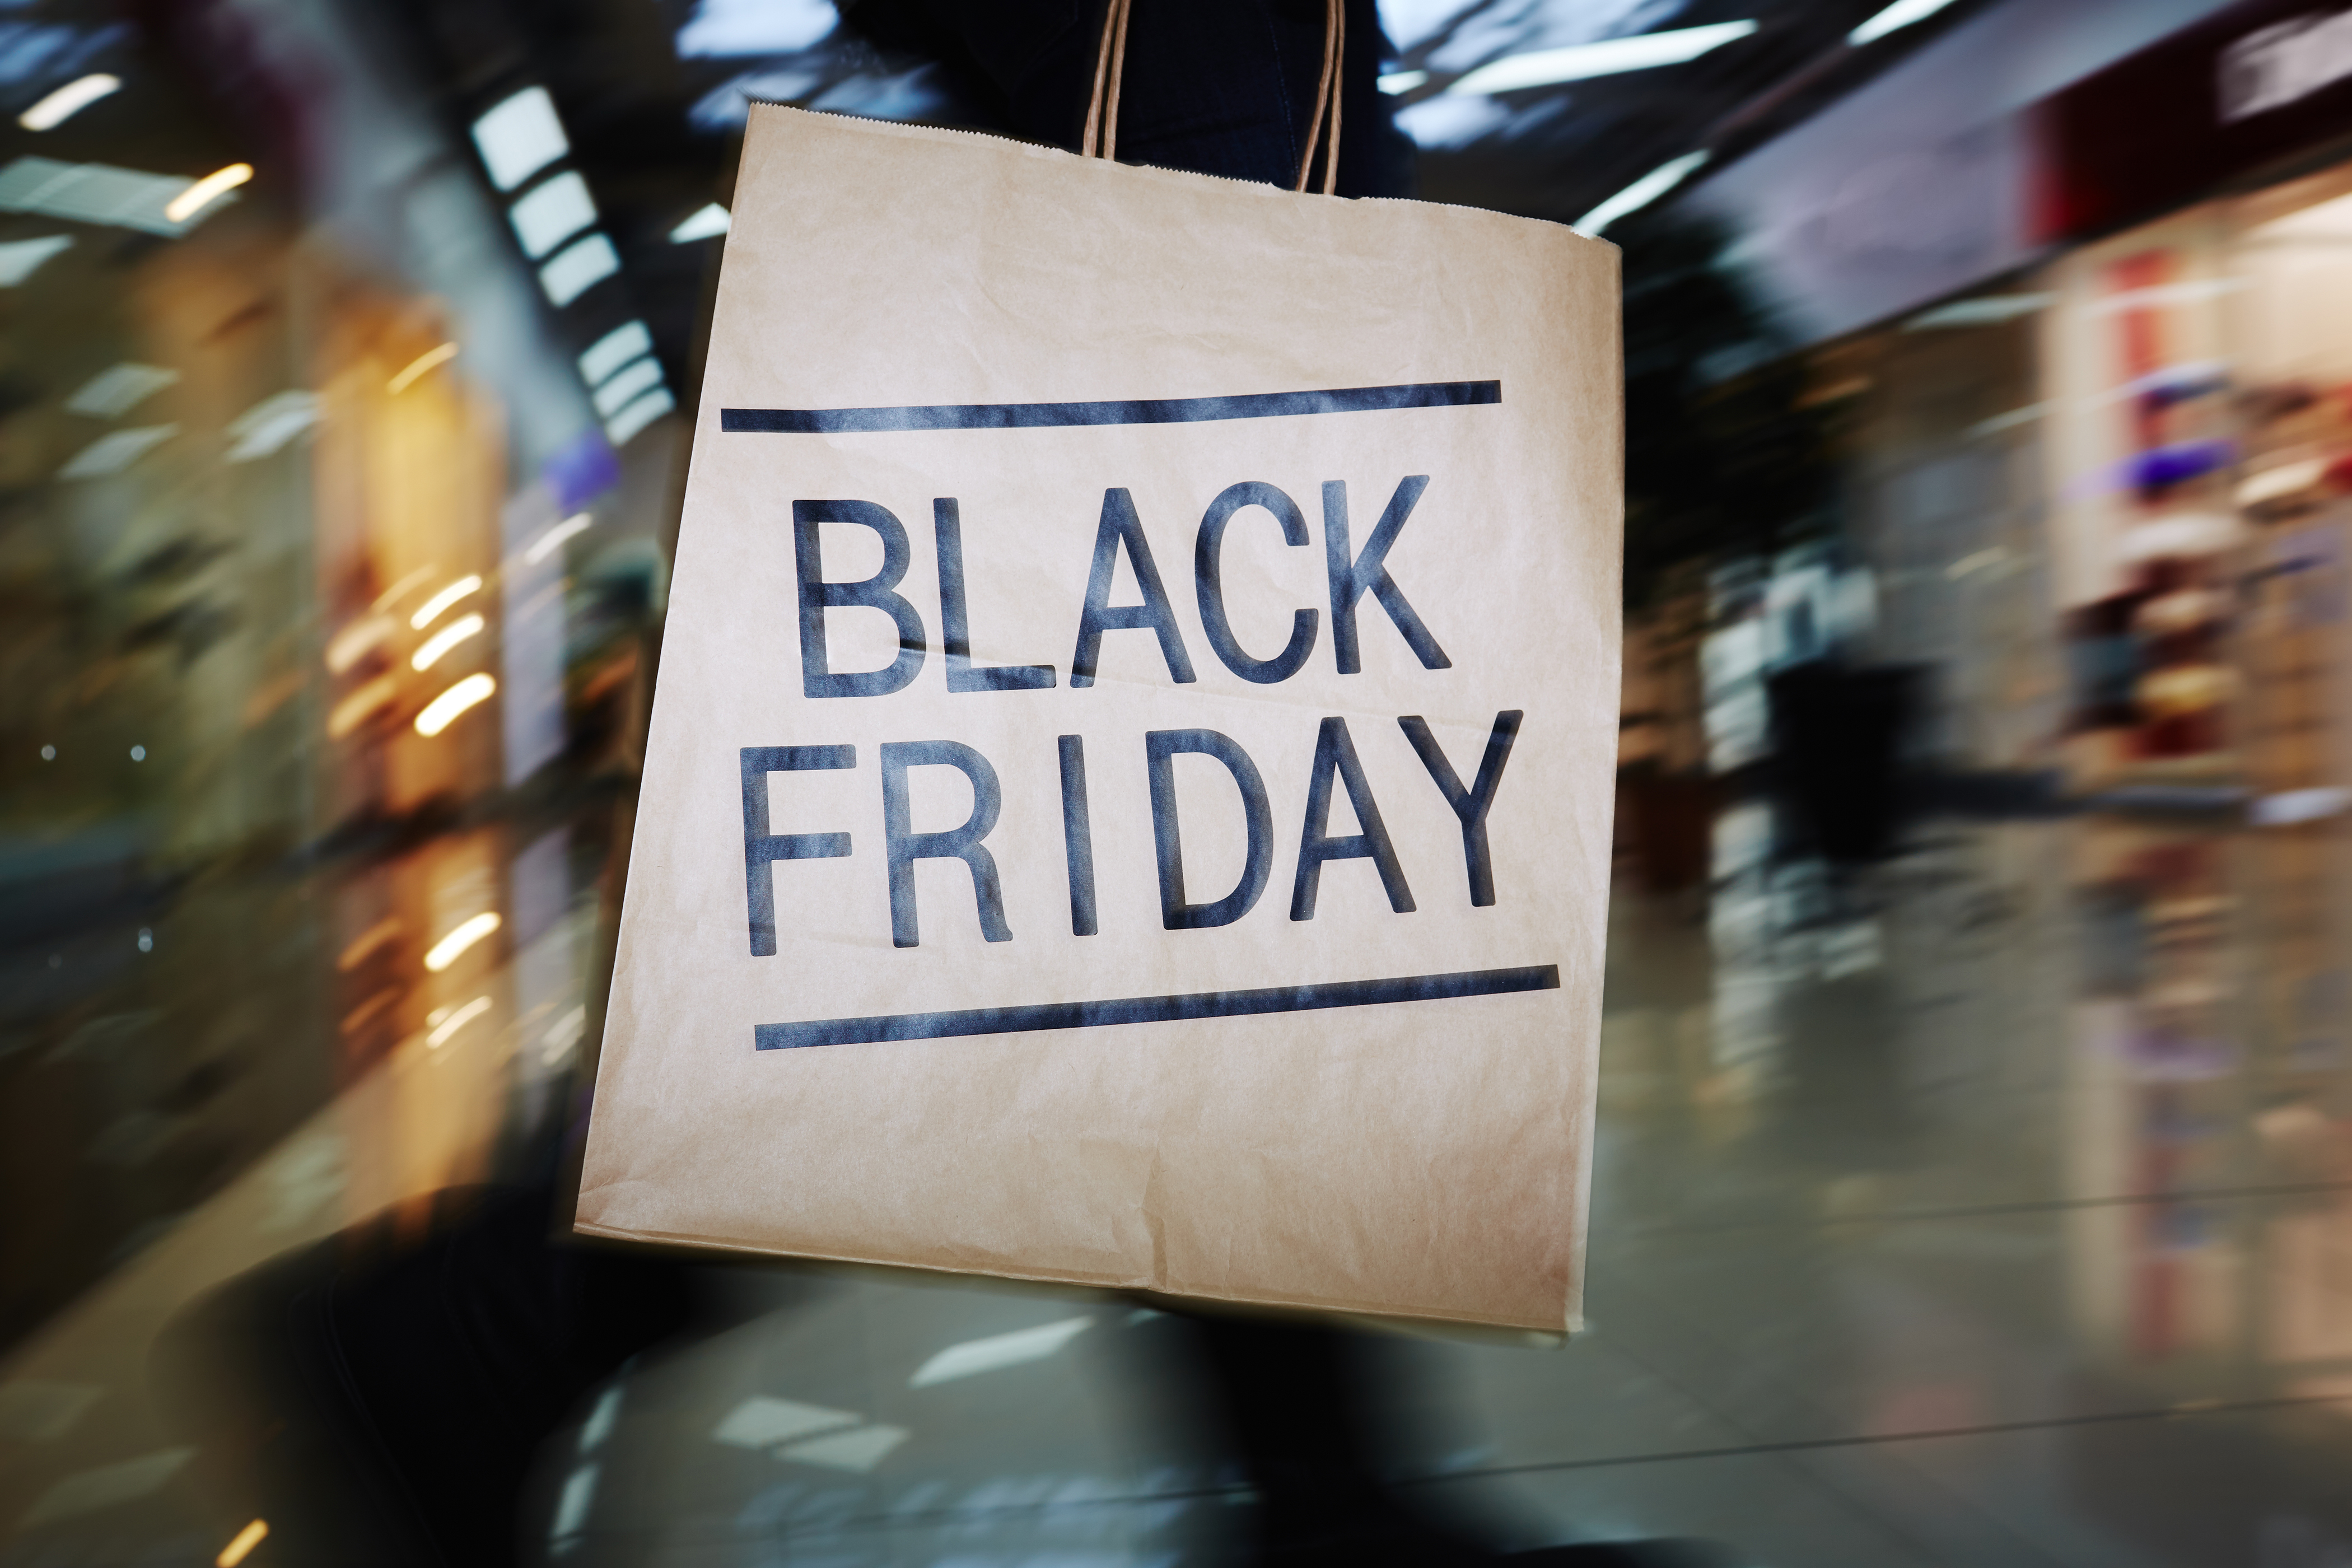 Blackfriday Germany The History Of Black Friday Shopping In Germany Germanyinusa